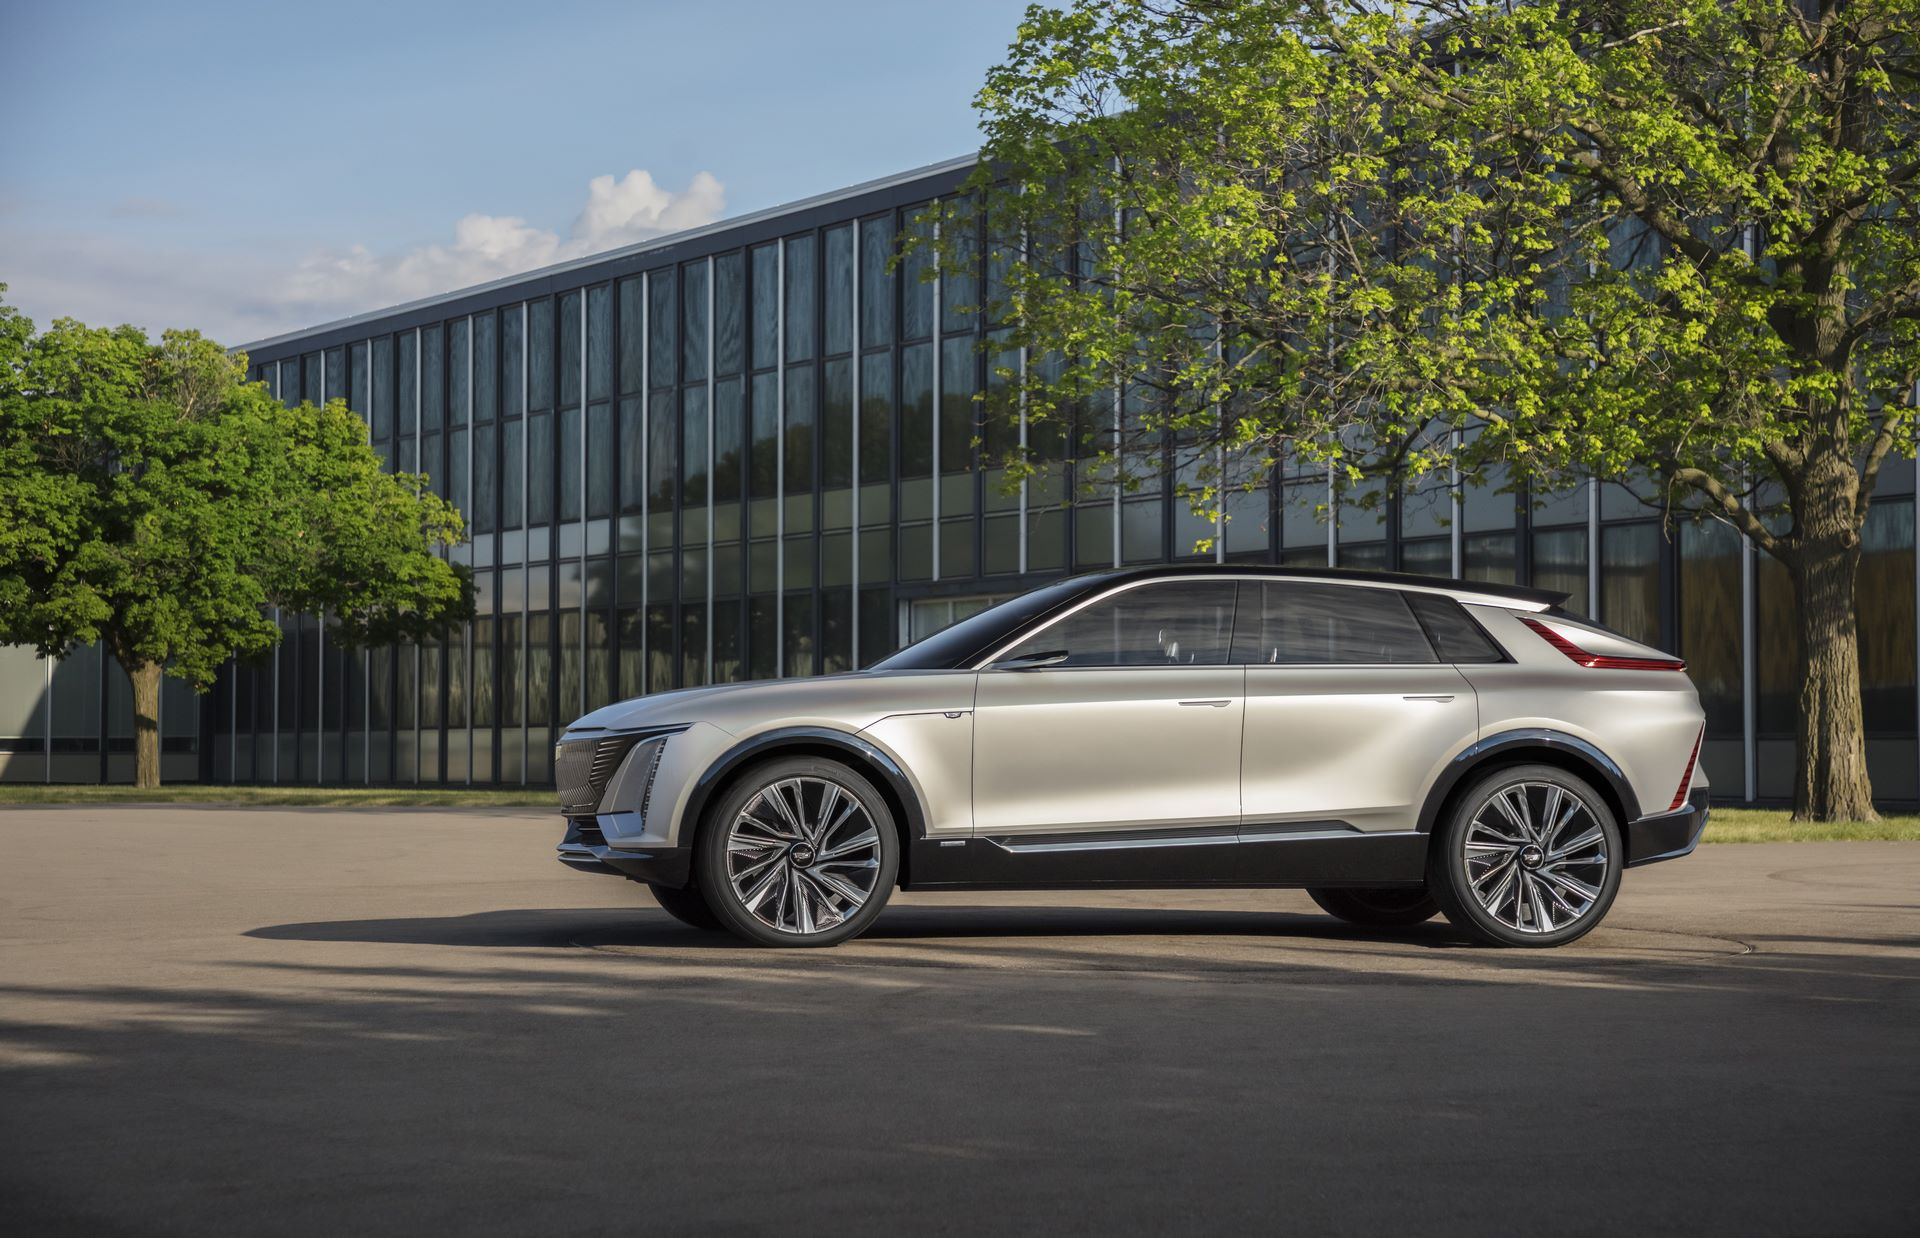 Cadillac LYRIQ pairs next-generation battery technology with a bold design statement which introduces a new face, proportion and presence for the brand's new generation of EVs. Images display show car, not for sale. Some features shown may not be available on actual production model.